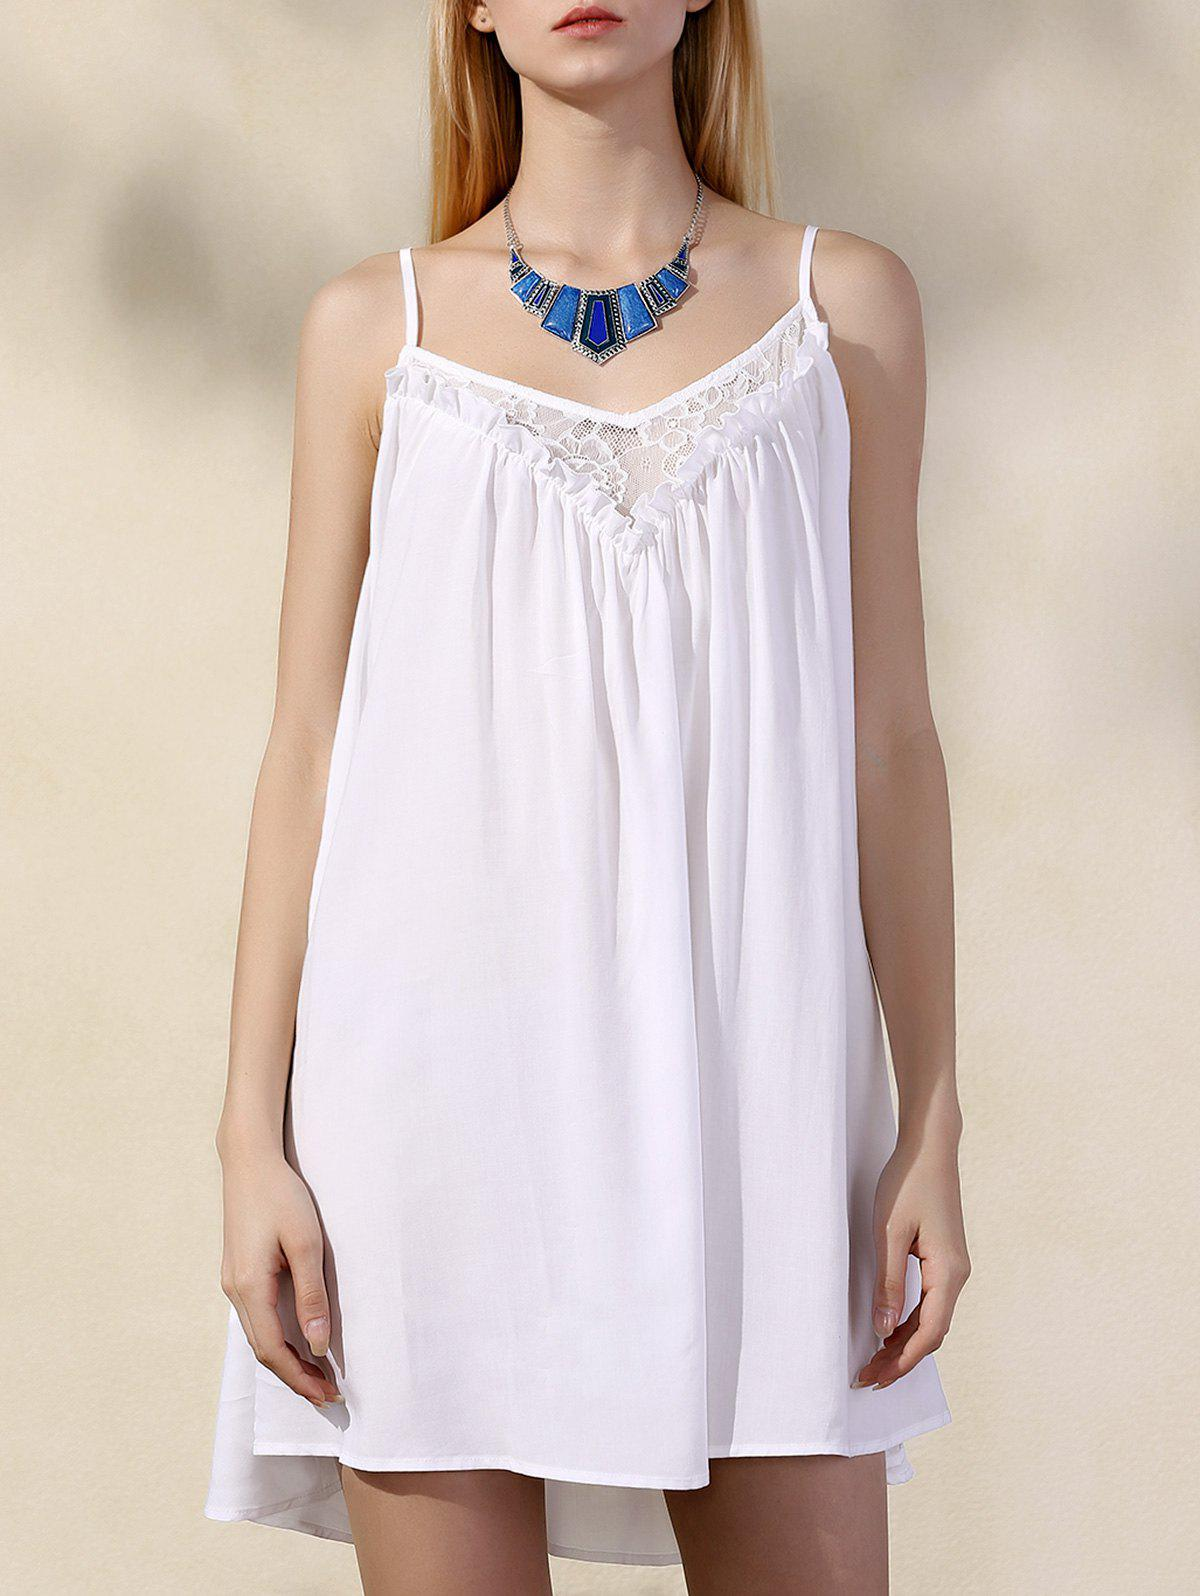 Stylish Chiffon Spaghetti Strap Lace Dress For Women - WHITE XL